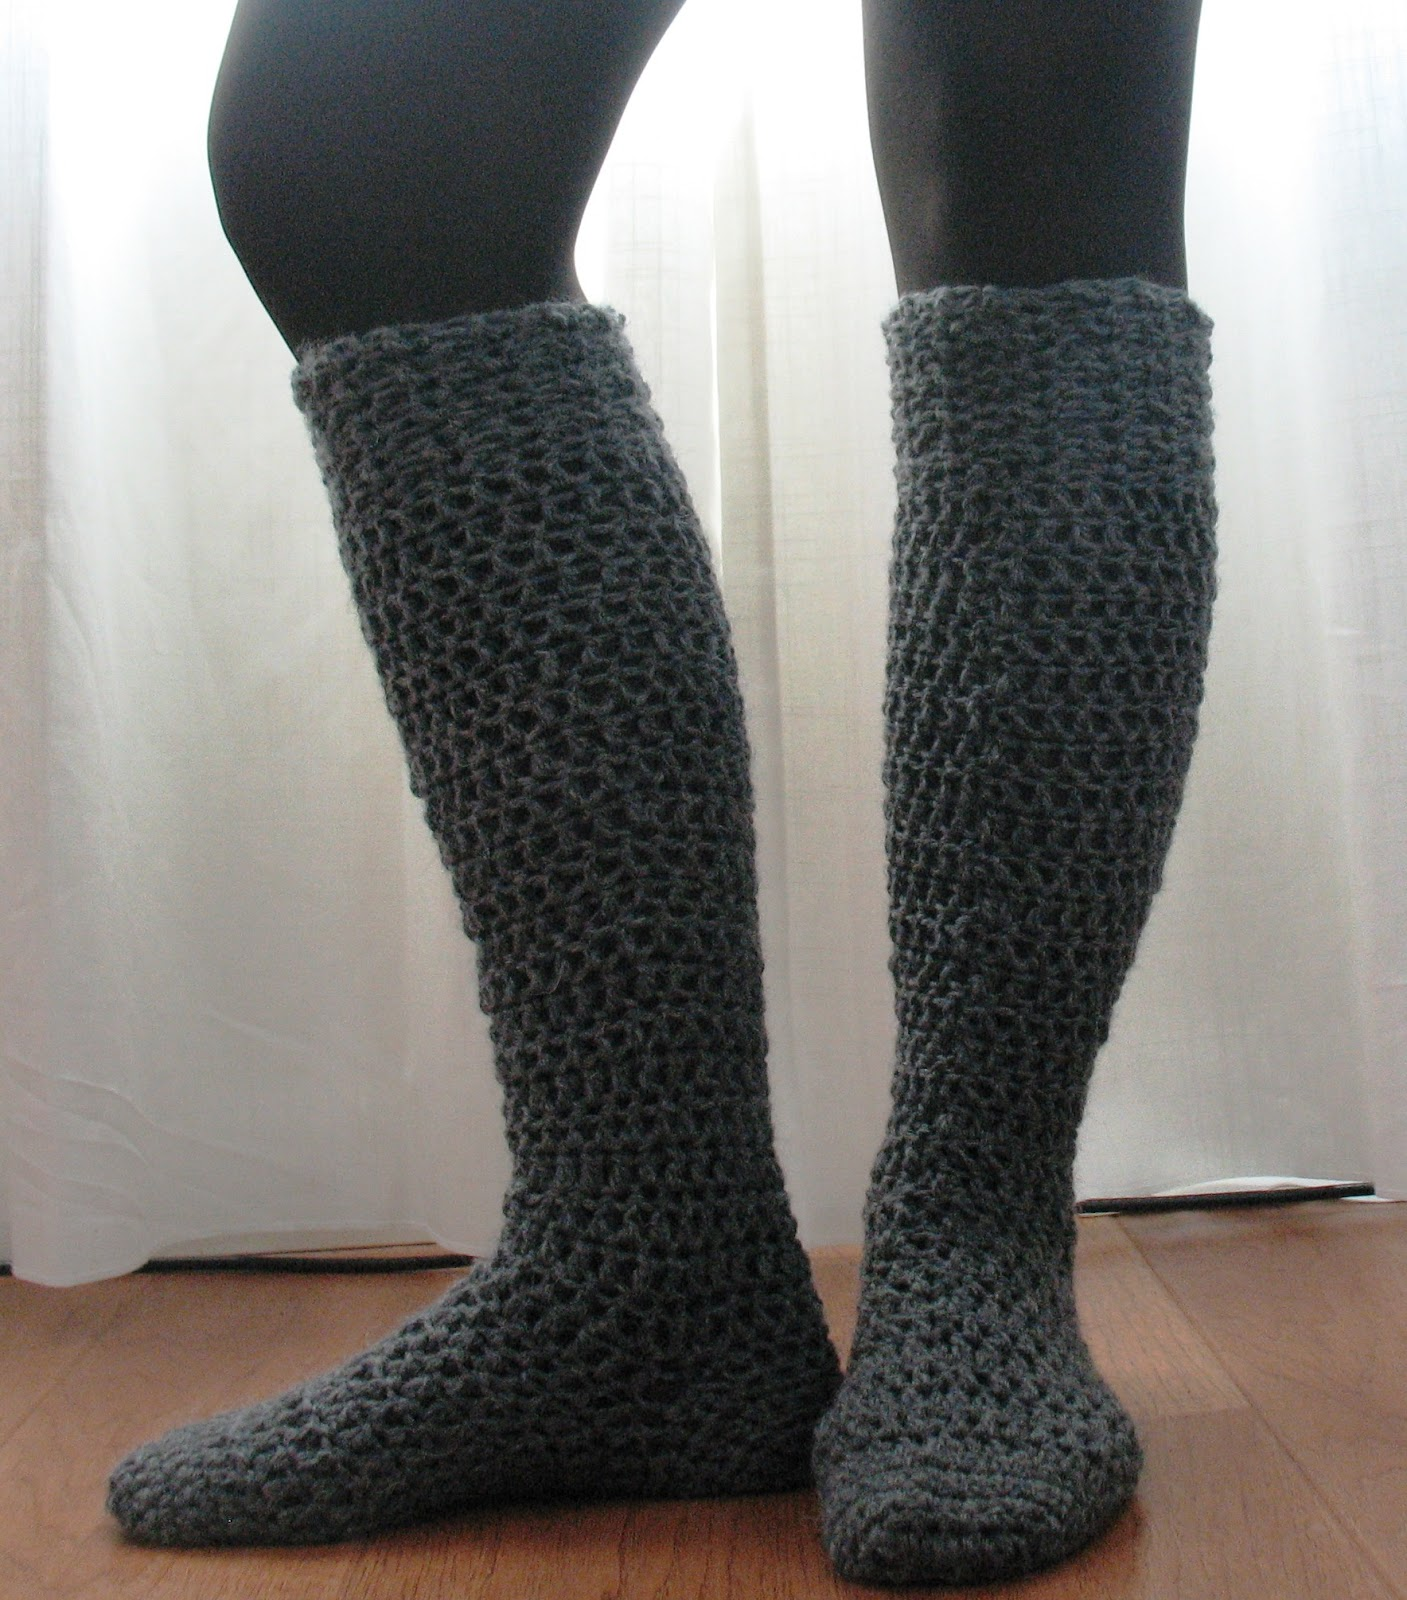 Ball Hank n Skein: Knee-High Boot Socks!